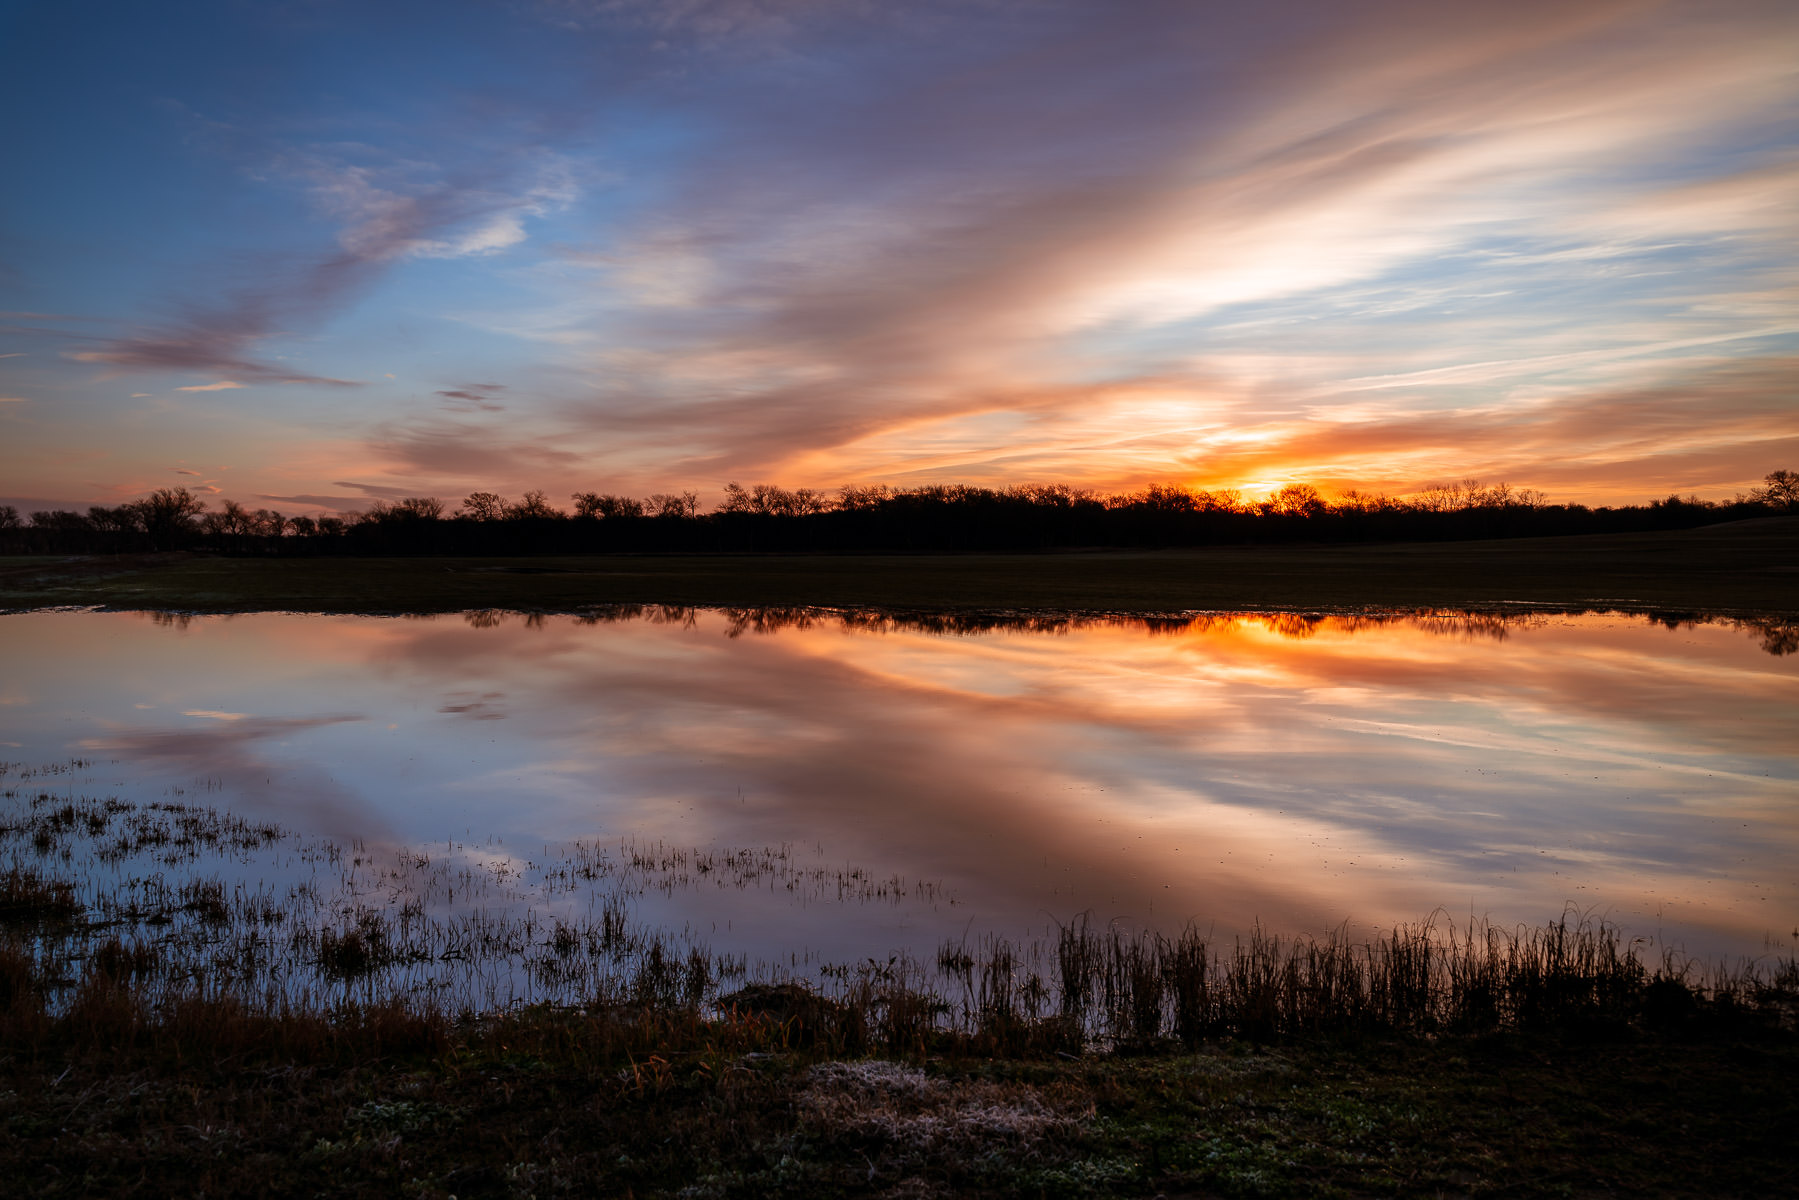 The sun rises on a pond at Texas' Hagerman National Wildlife Refuge.